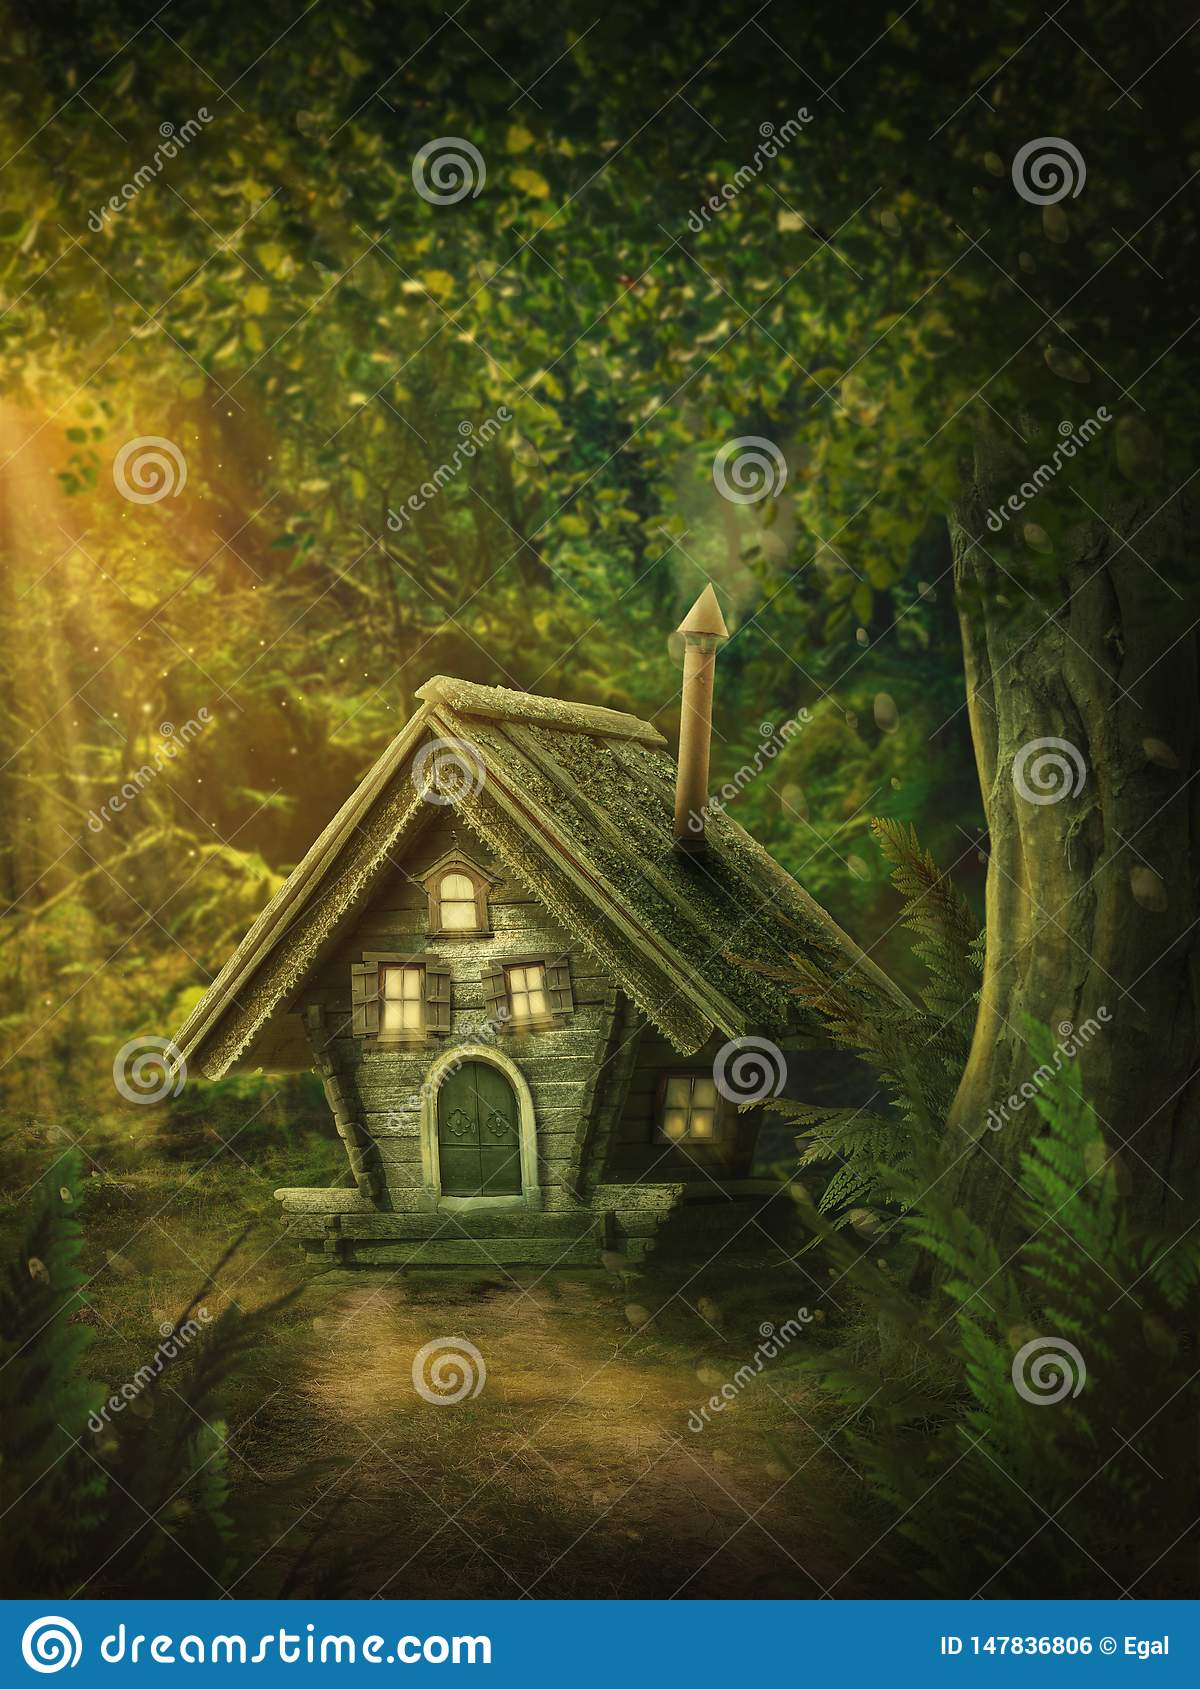 Fairy forest with a house